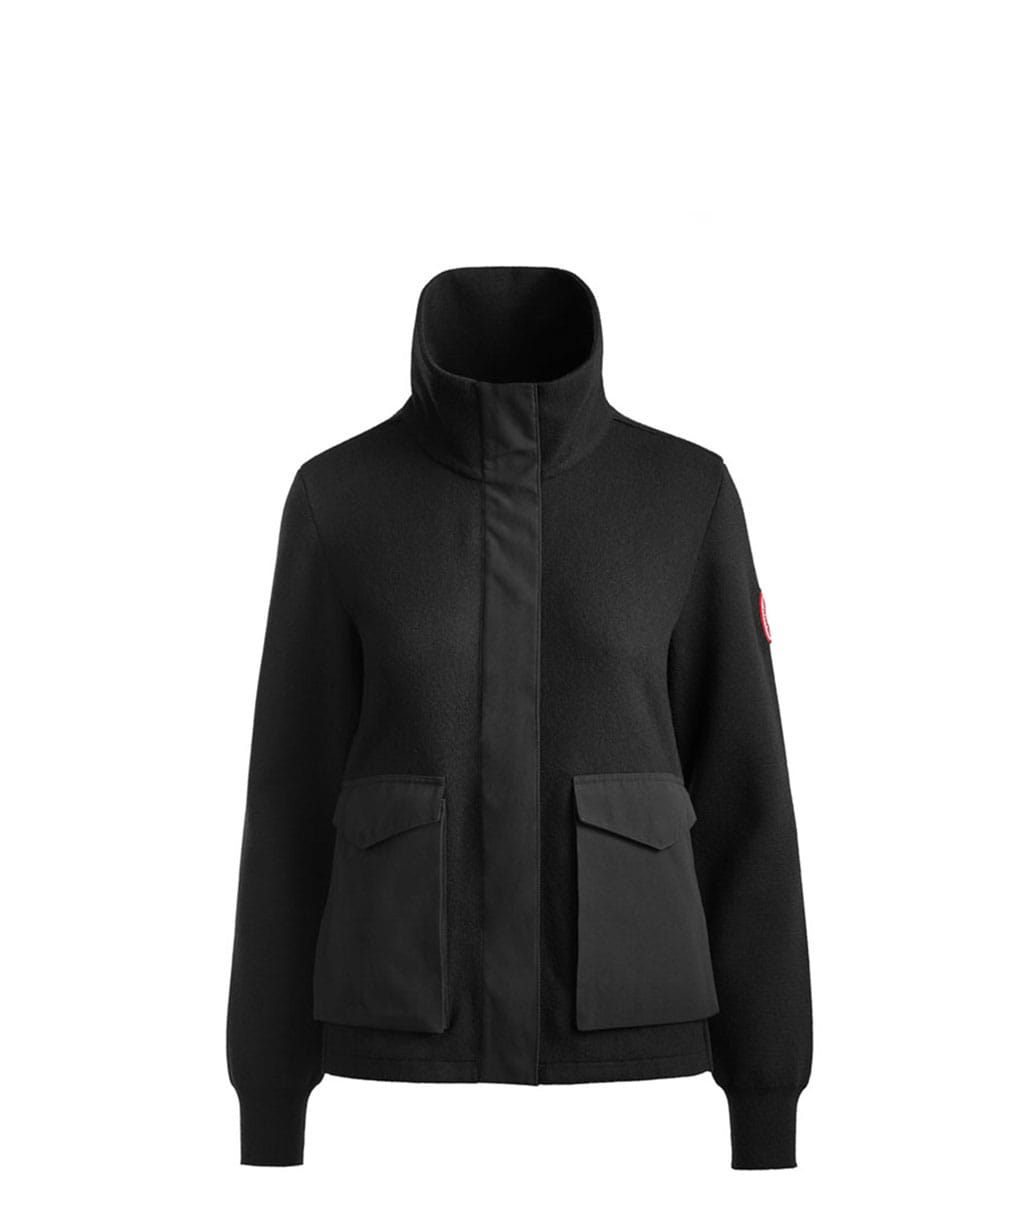 WINDBRIDGE JACKET